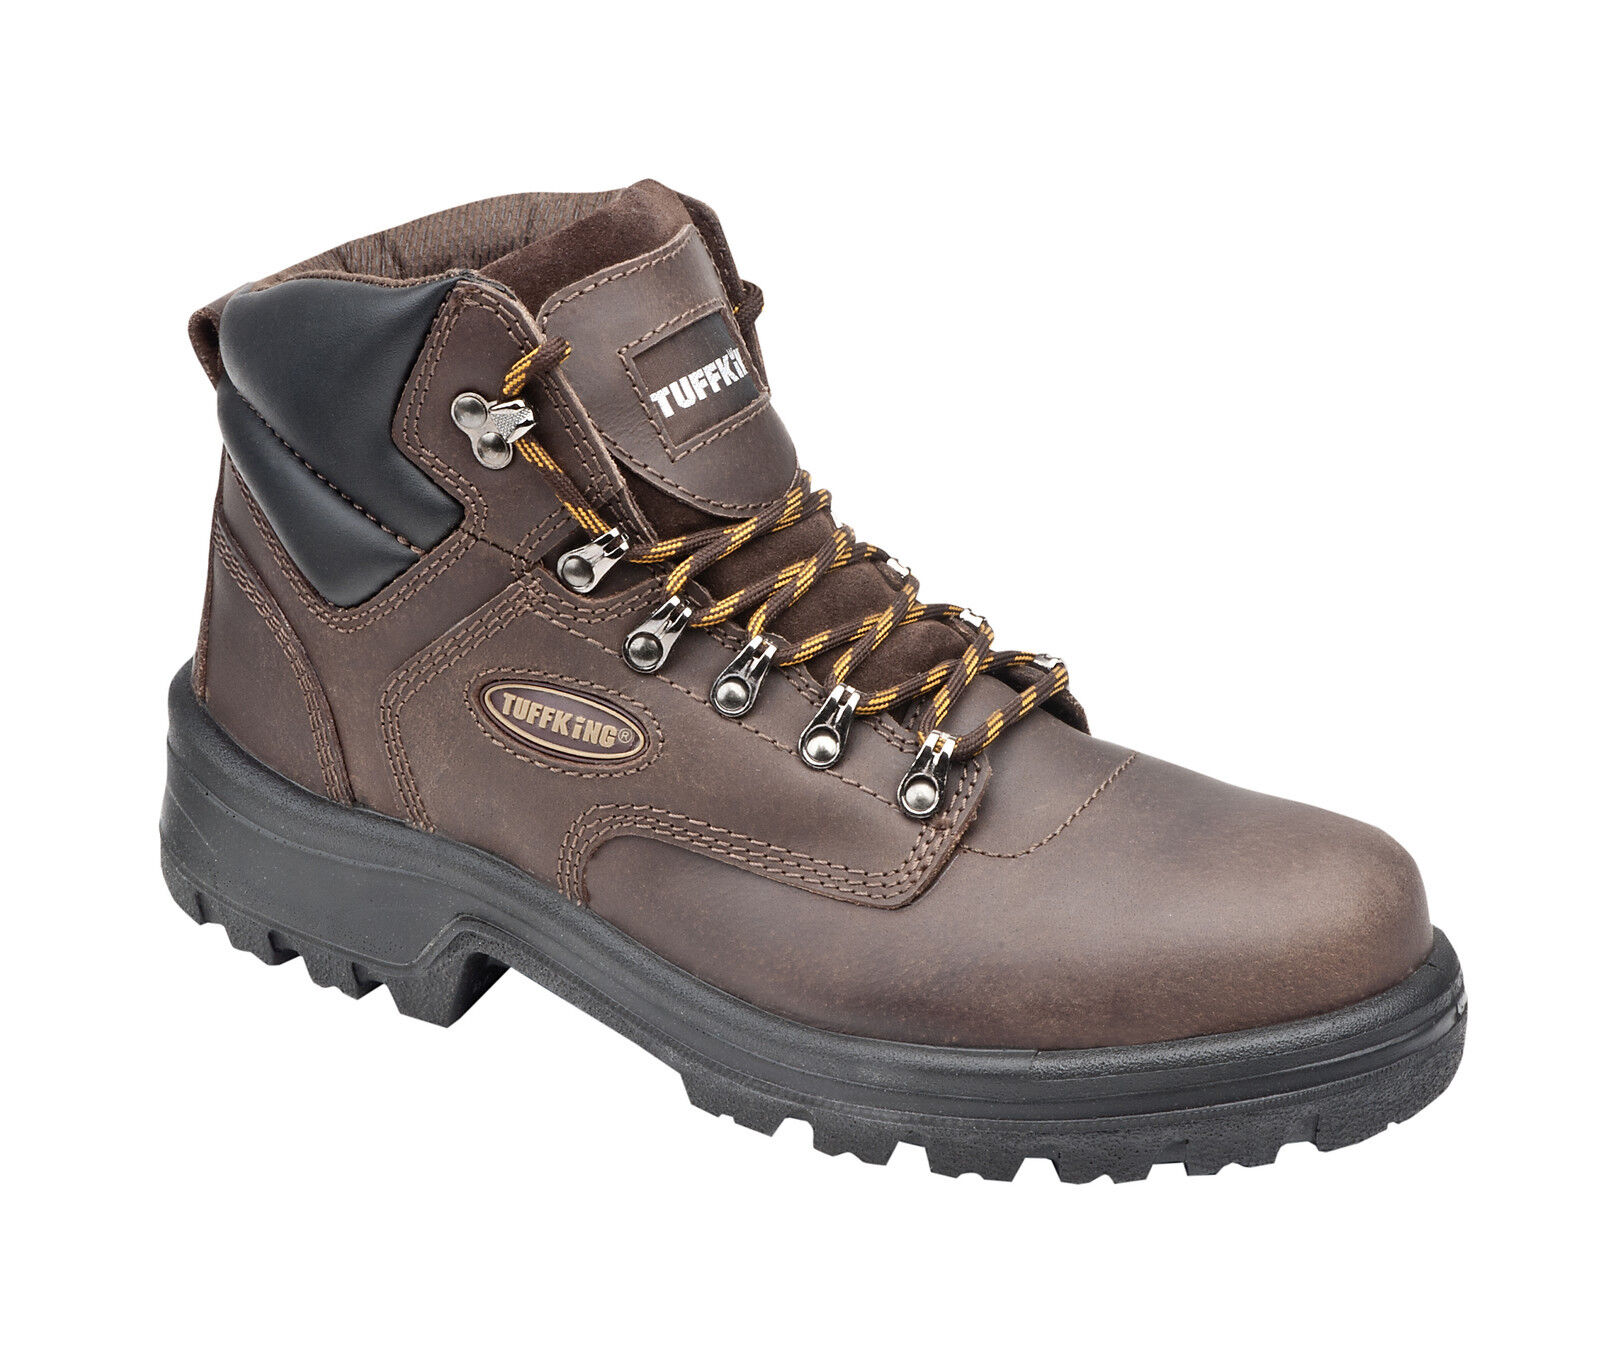 Tuffking 7122 S3 Waxy Brown Steel Toe Cap Hiker Style Safety Boots Work Boot PPE